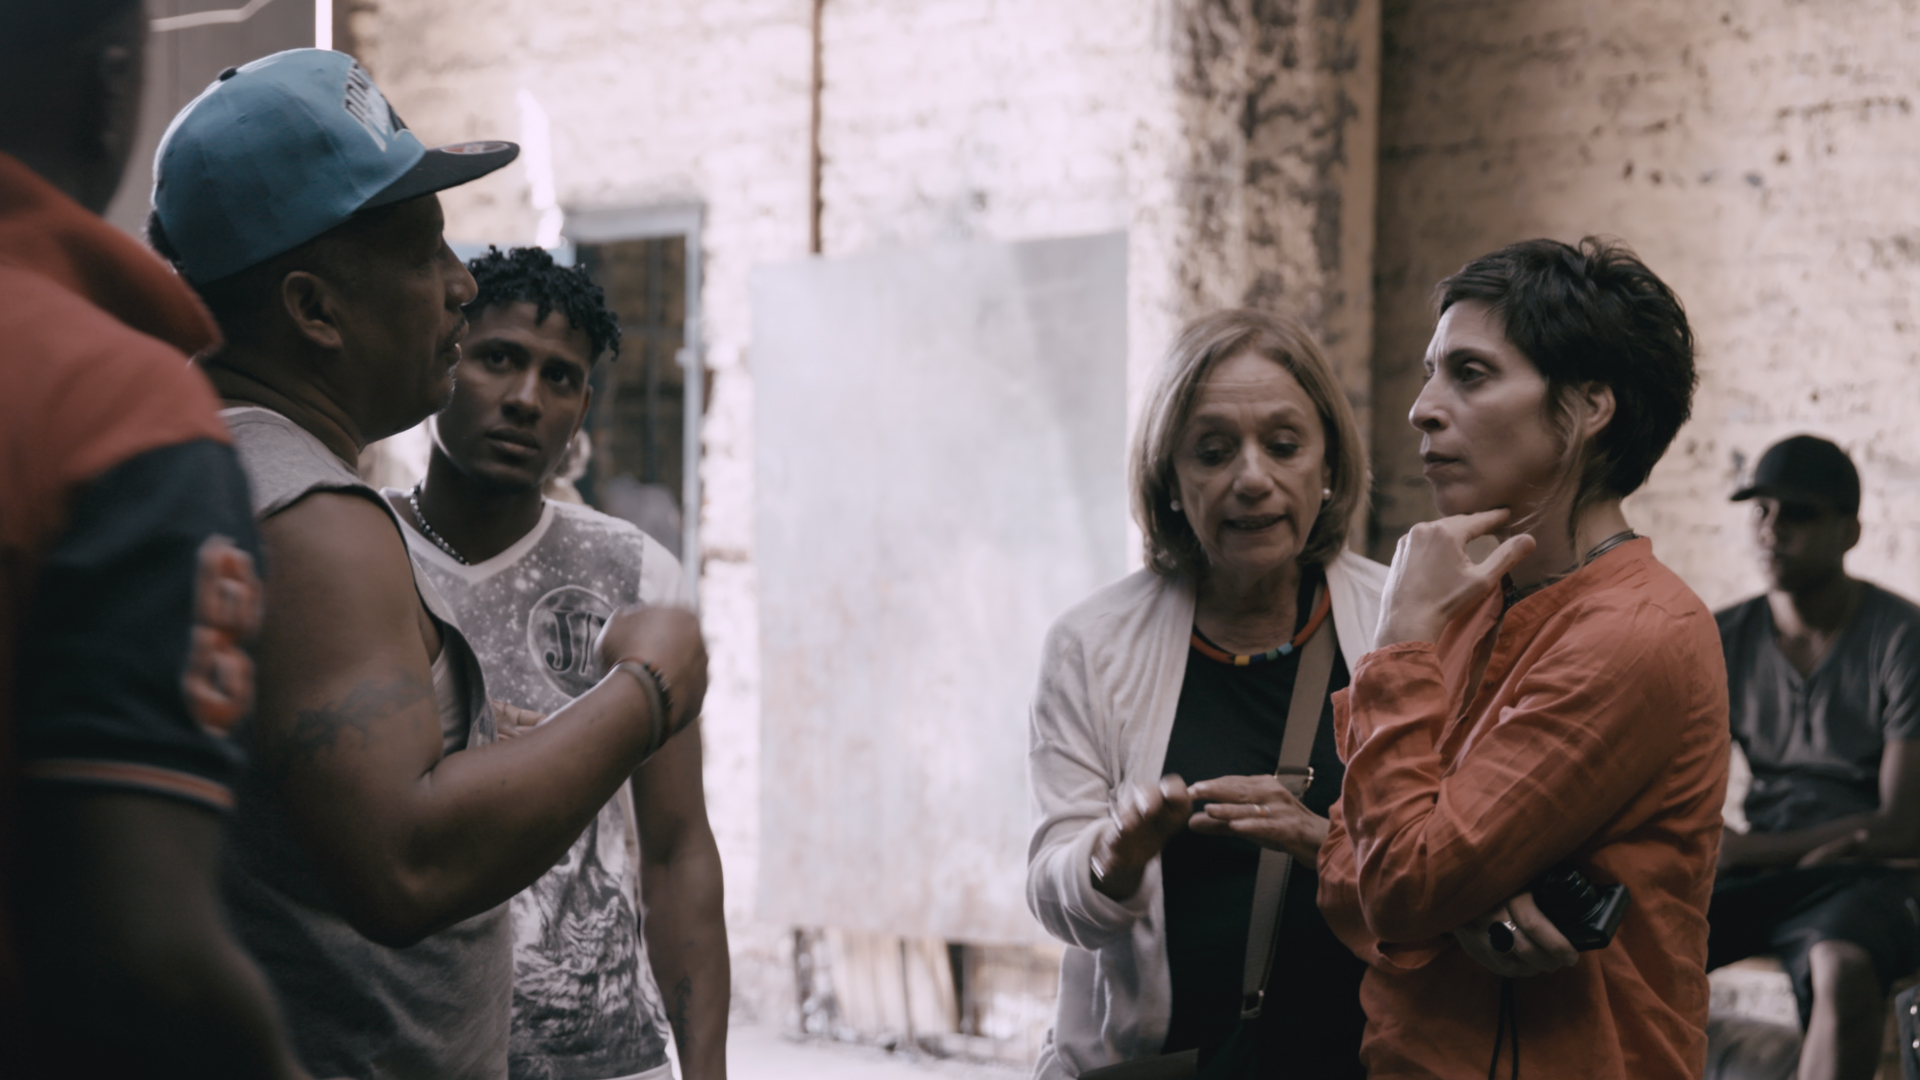 Farha in conversation with Barcelona residents.